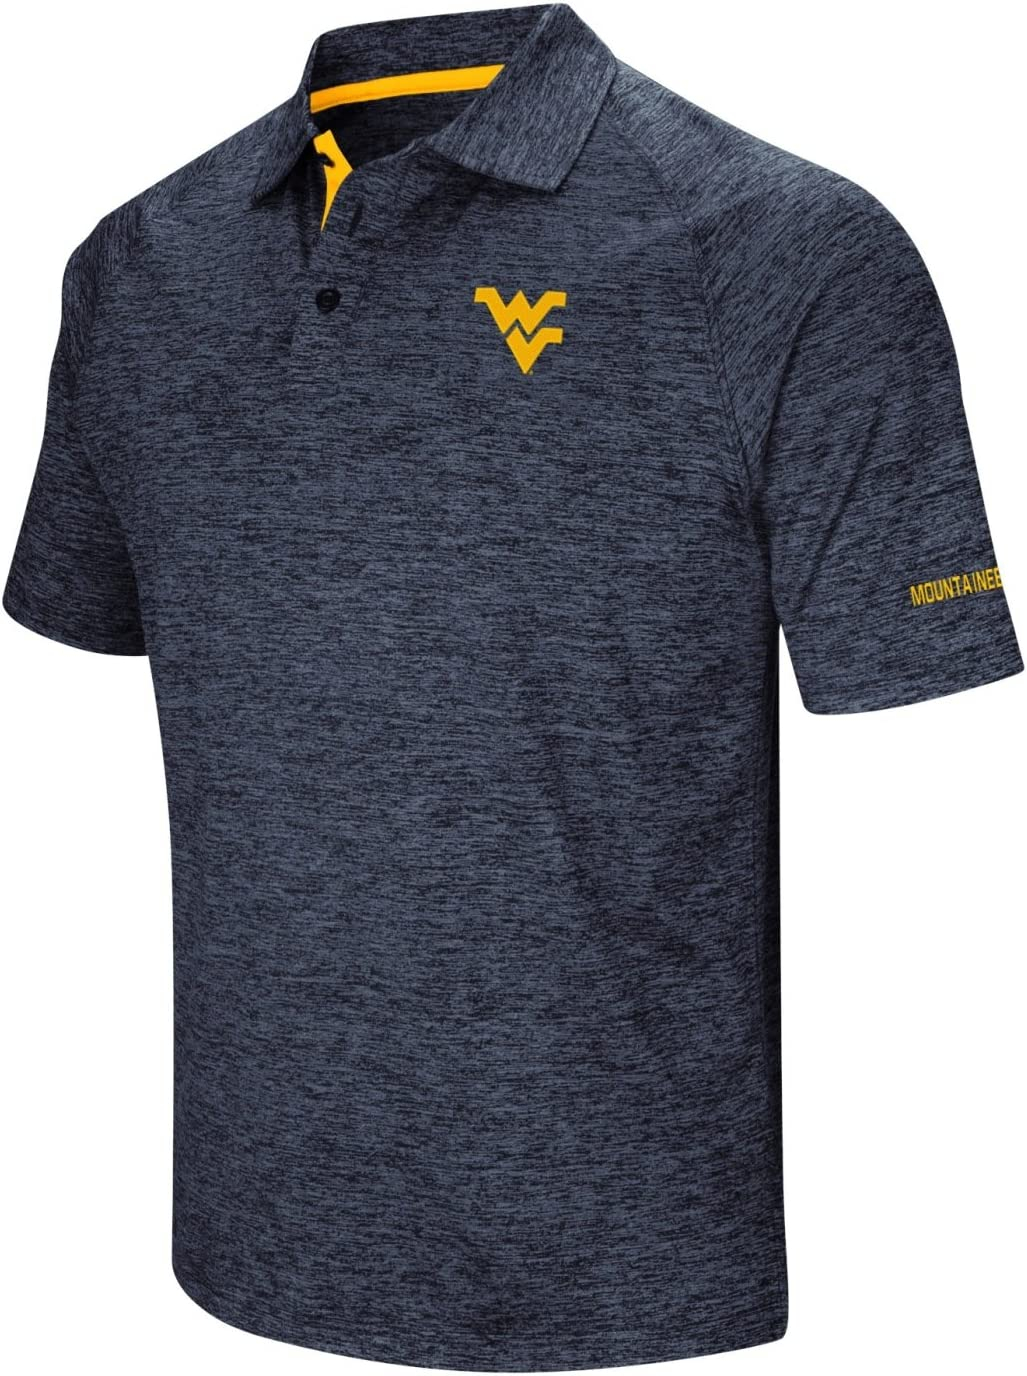 Stadium Athletics West Virginia Mountaineers NCAA Down Swing Mens Performance Polo Shirt